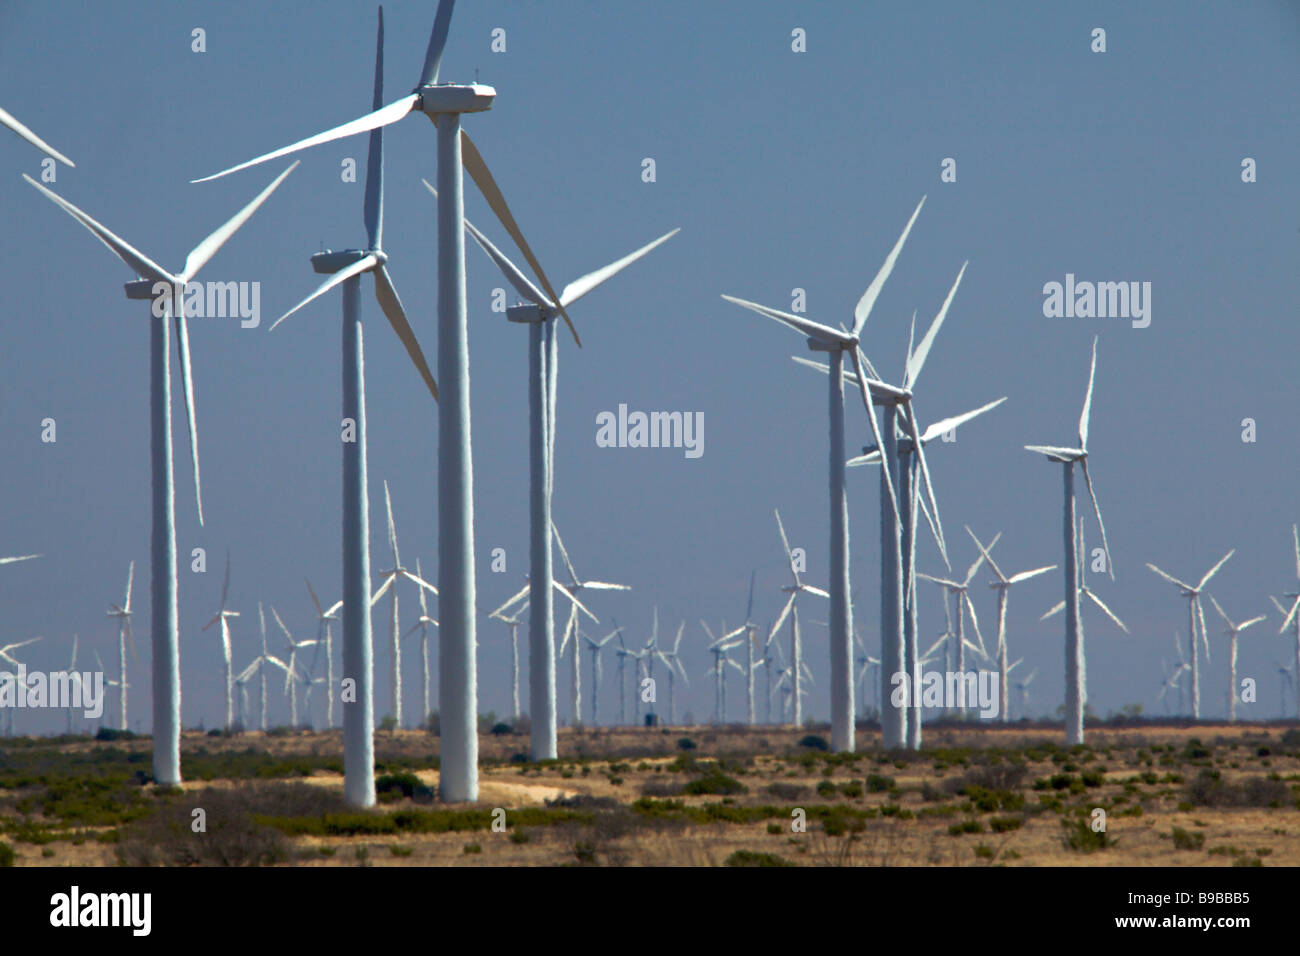 Wind turbines generating electricity at Horse Hollow Wind Farm Nolan Texas the world's largest wind power project - Stock Image